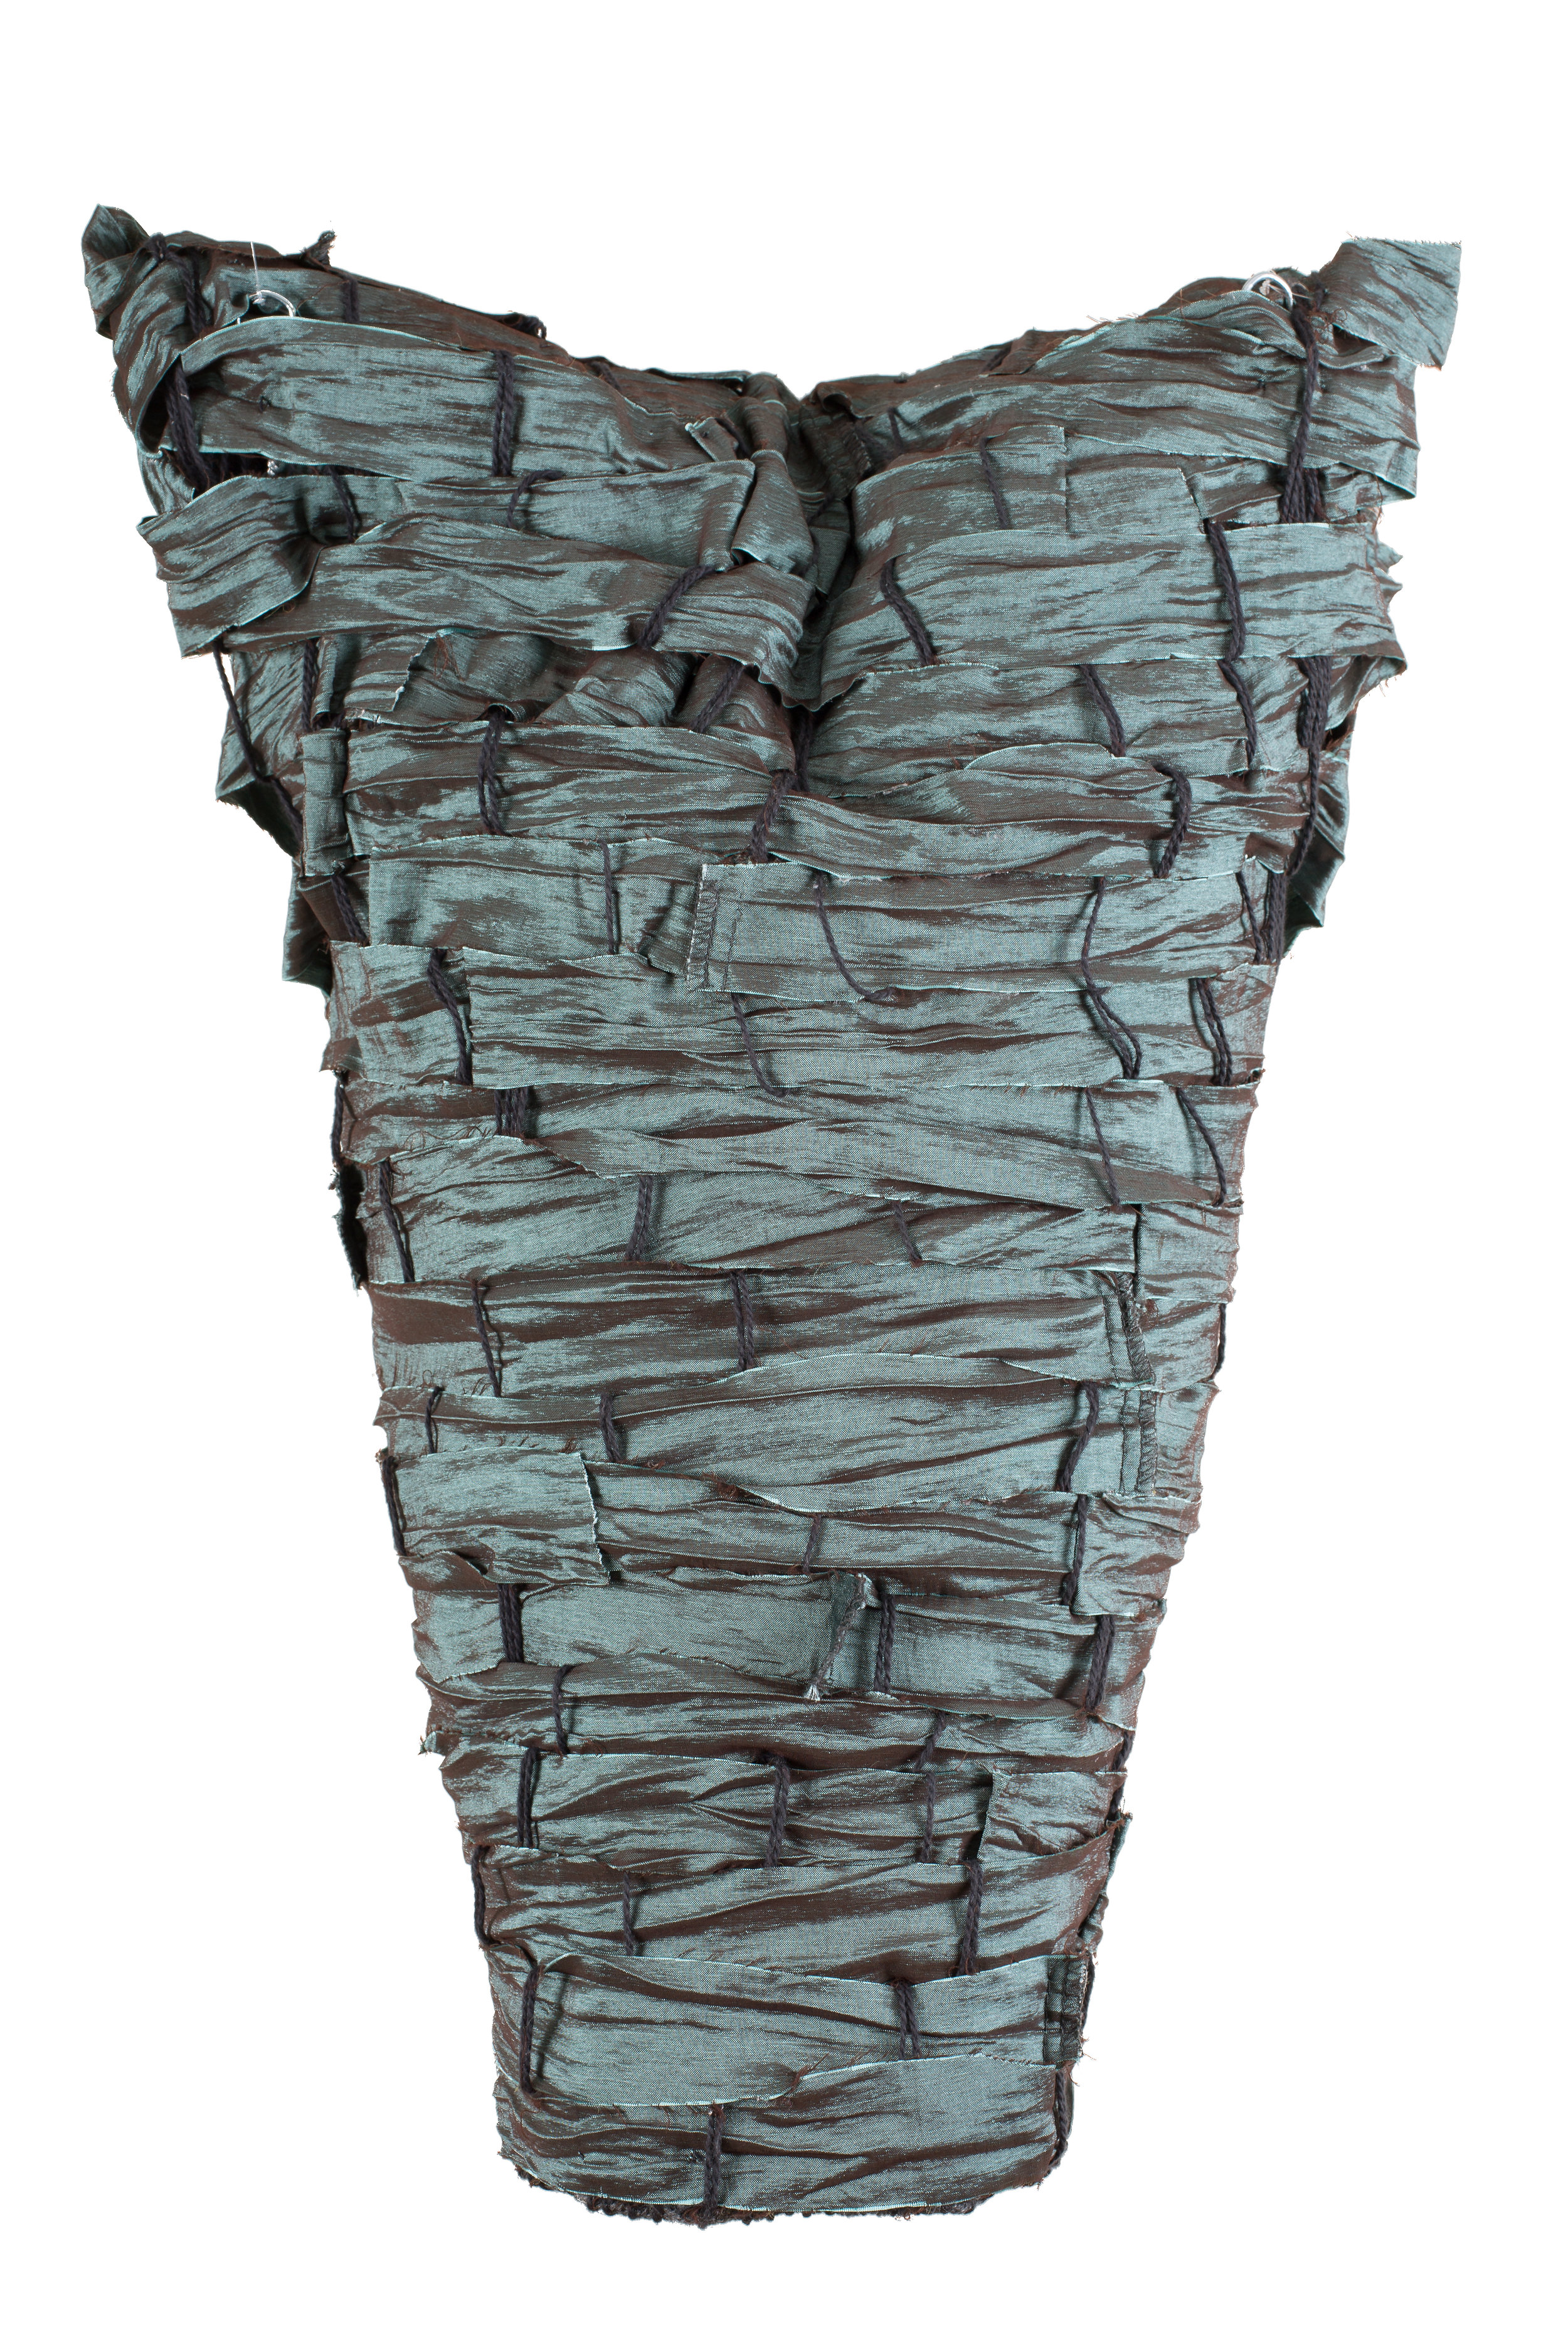 Sylvia Vander Sluis,  Strong and Beautiful,  Handwoven polyester/nylon, 19x14x6